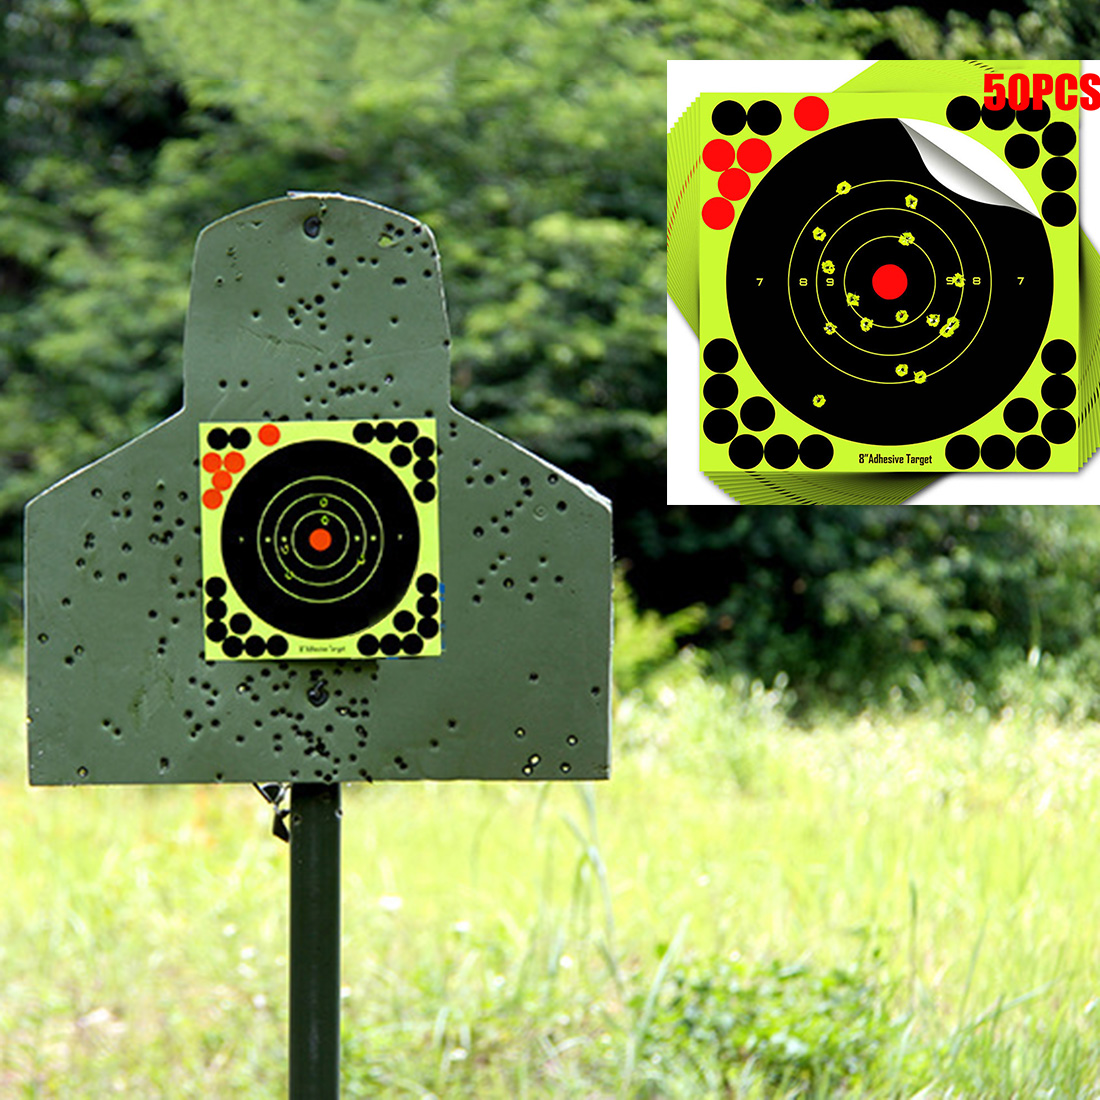 50pcs Splatter Flower Objective Colorful 8-Inch Targets Stickers 2020 Hot Sale Shoot Target Adhesive Reactivity Aim Shoot Target